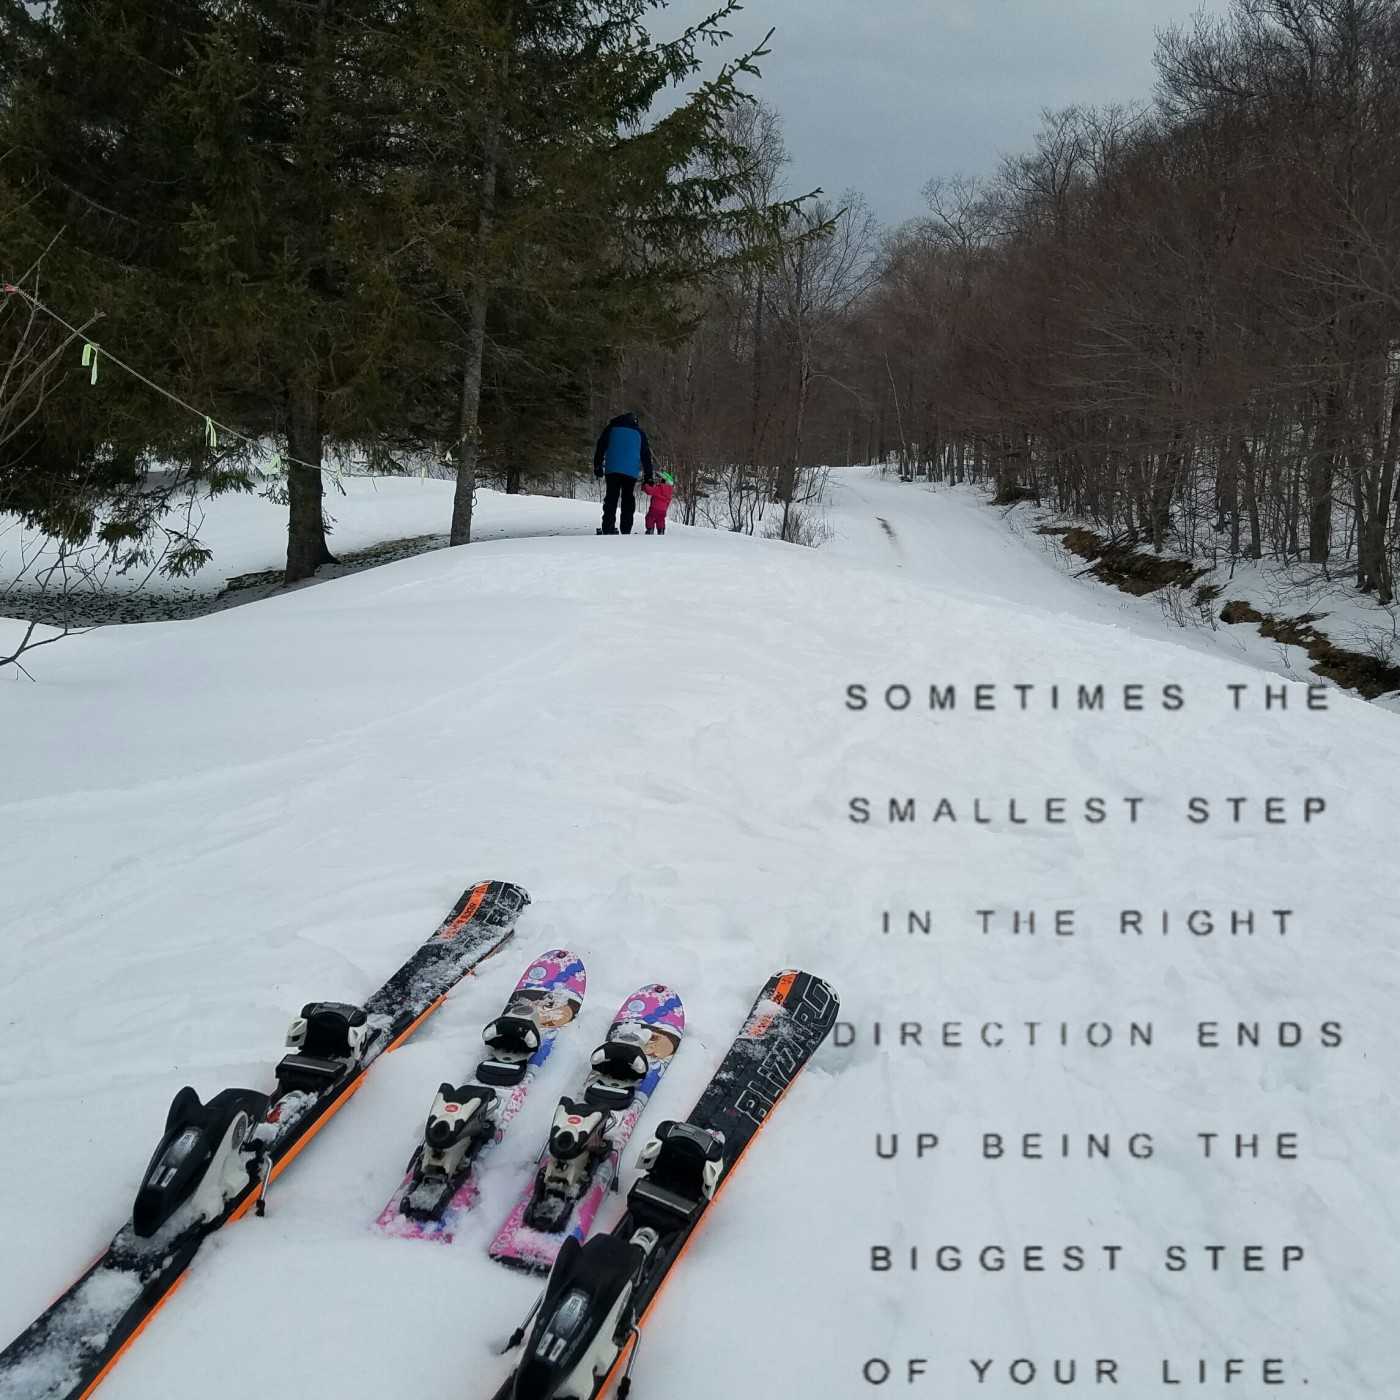 Better Beauty Vermont Skis by pond sometimes the smallest step in the right direction ends up being the biggest step of your life